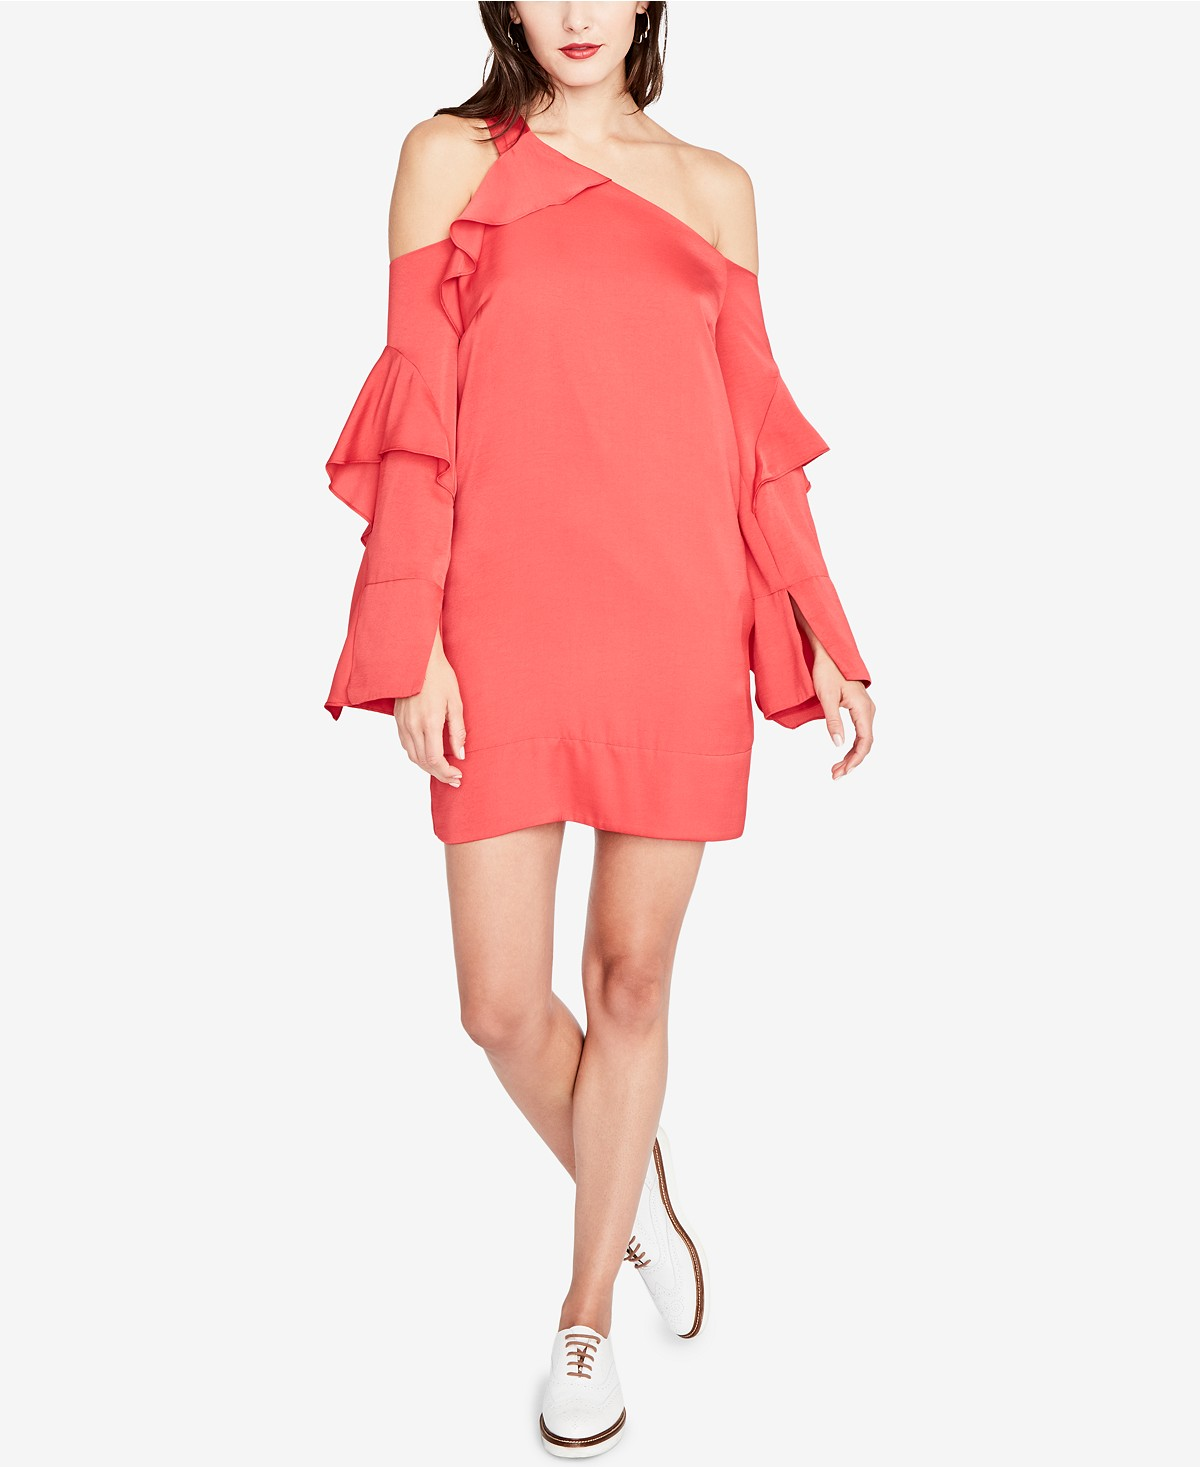 Ruffled One-Shoulder Dress